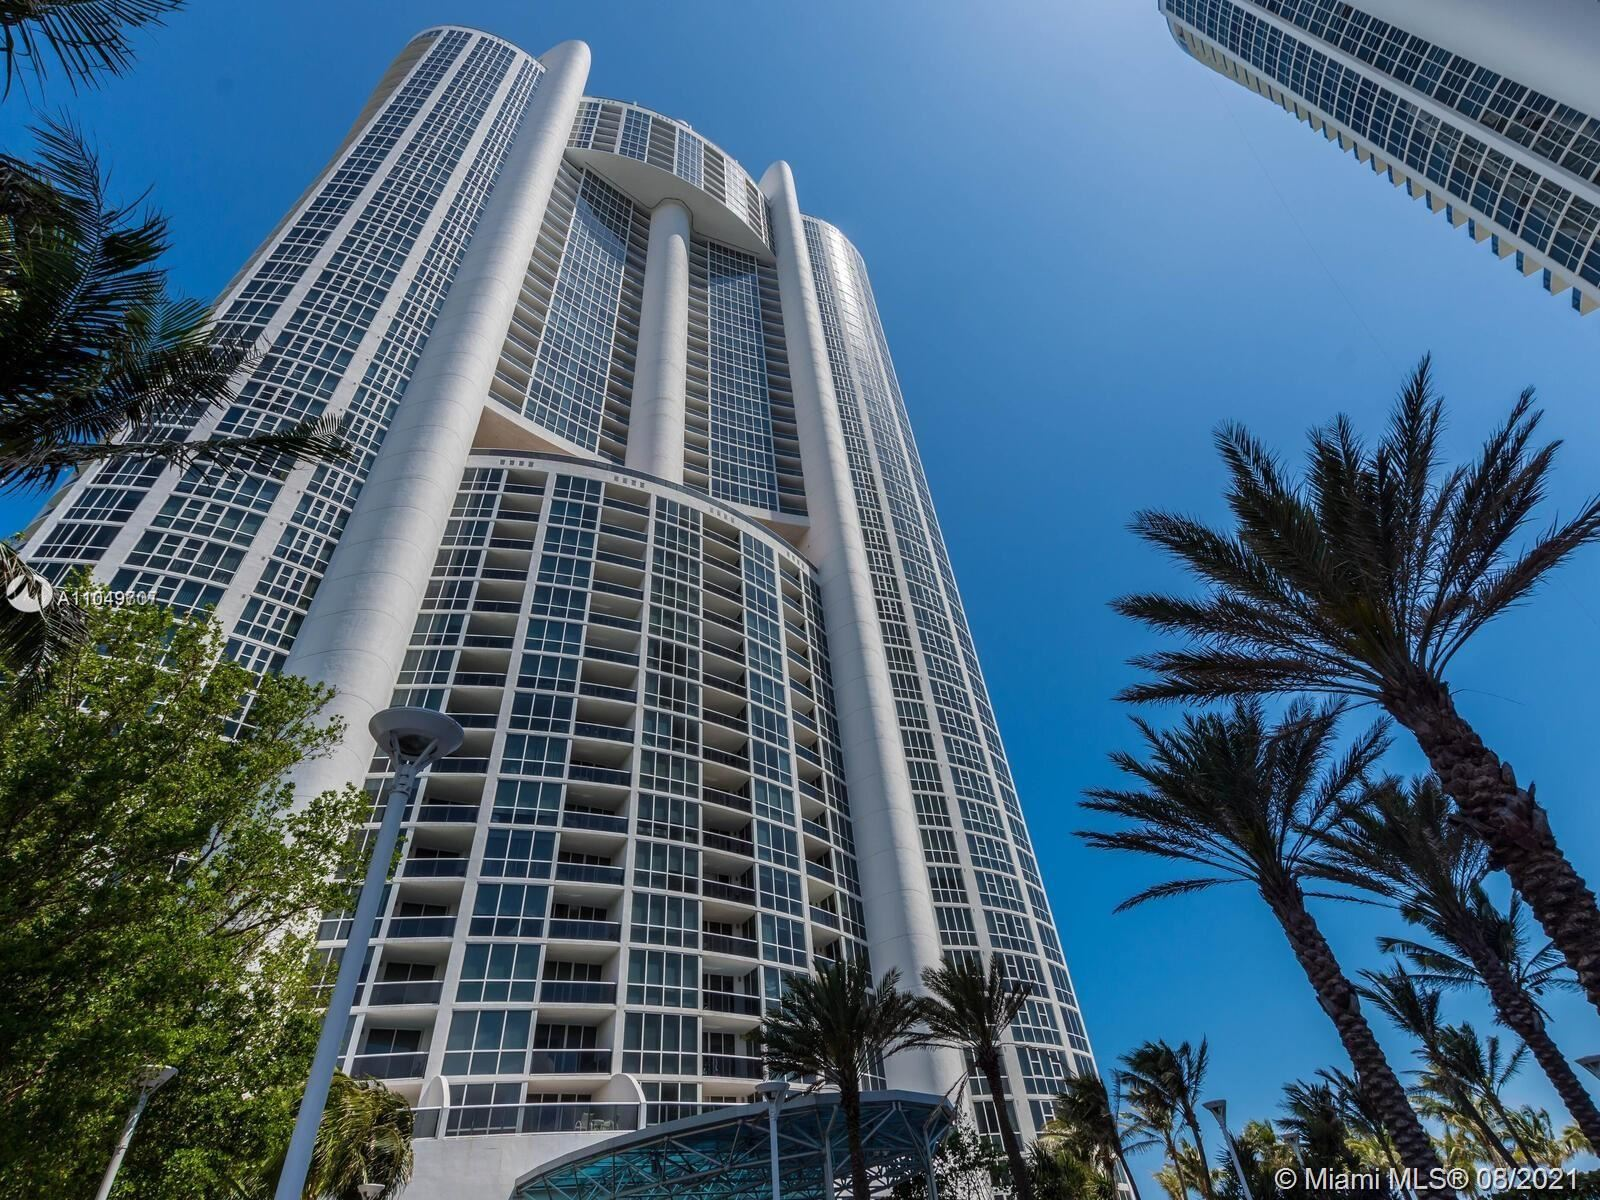 18201 Collins Ave #1108, Sunny Isles, FL 33160 - #: A11049707